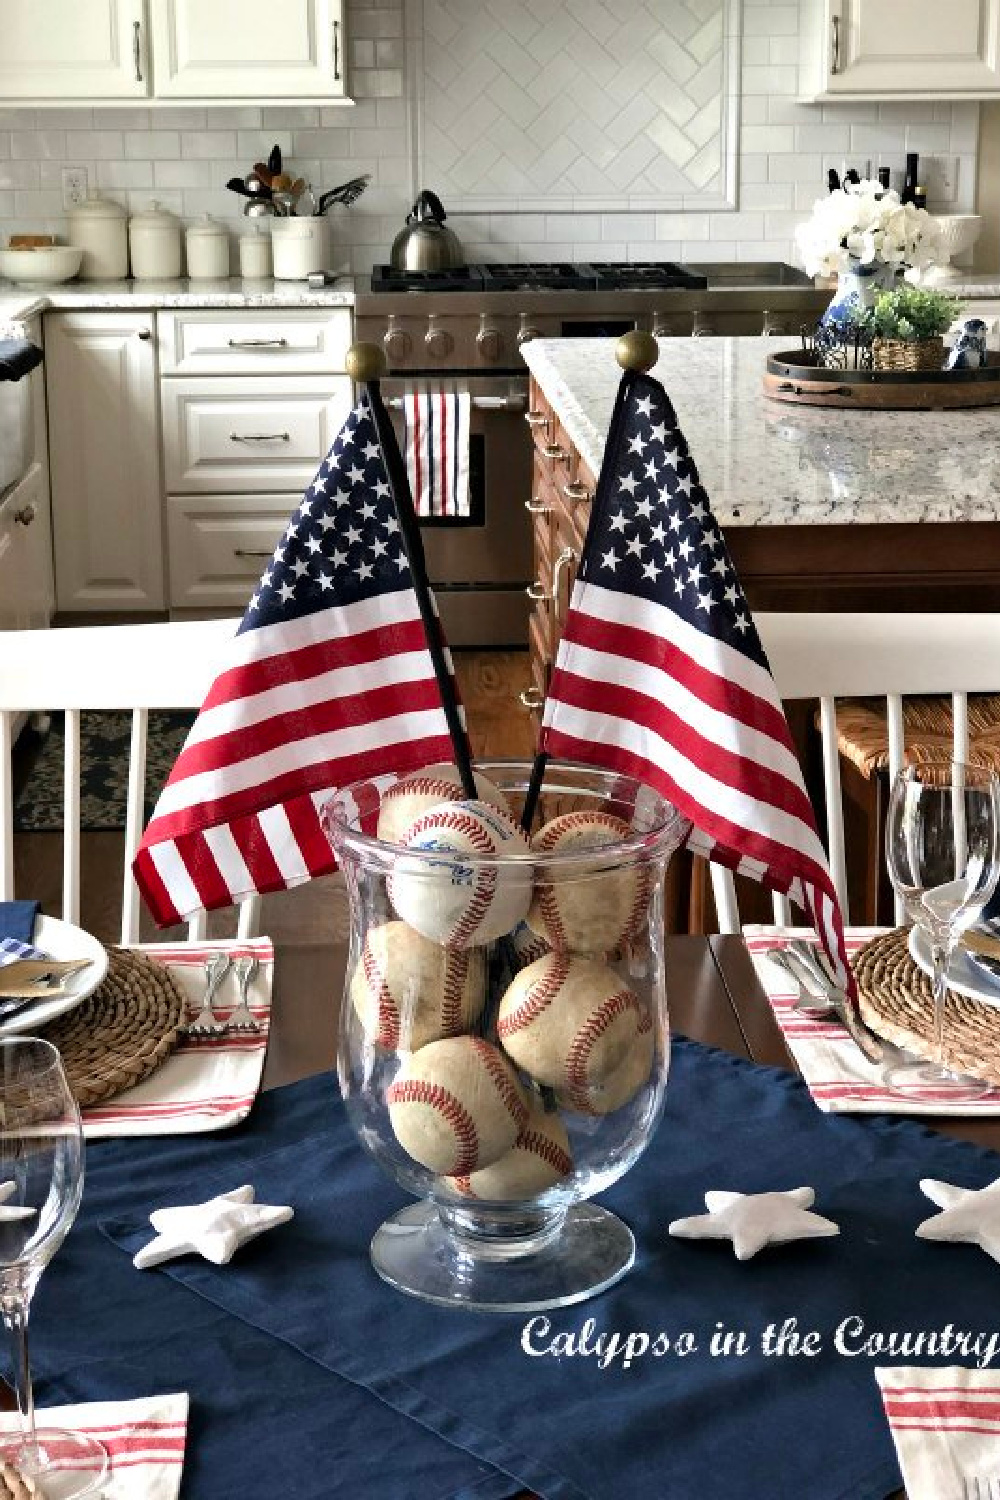 centerpiece with American flags and baseballs